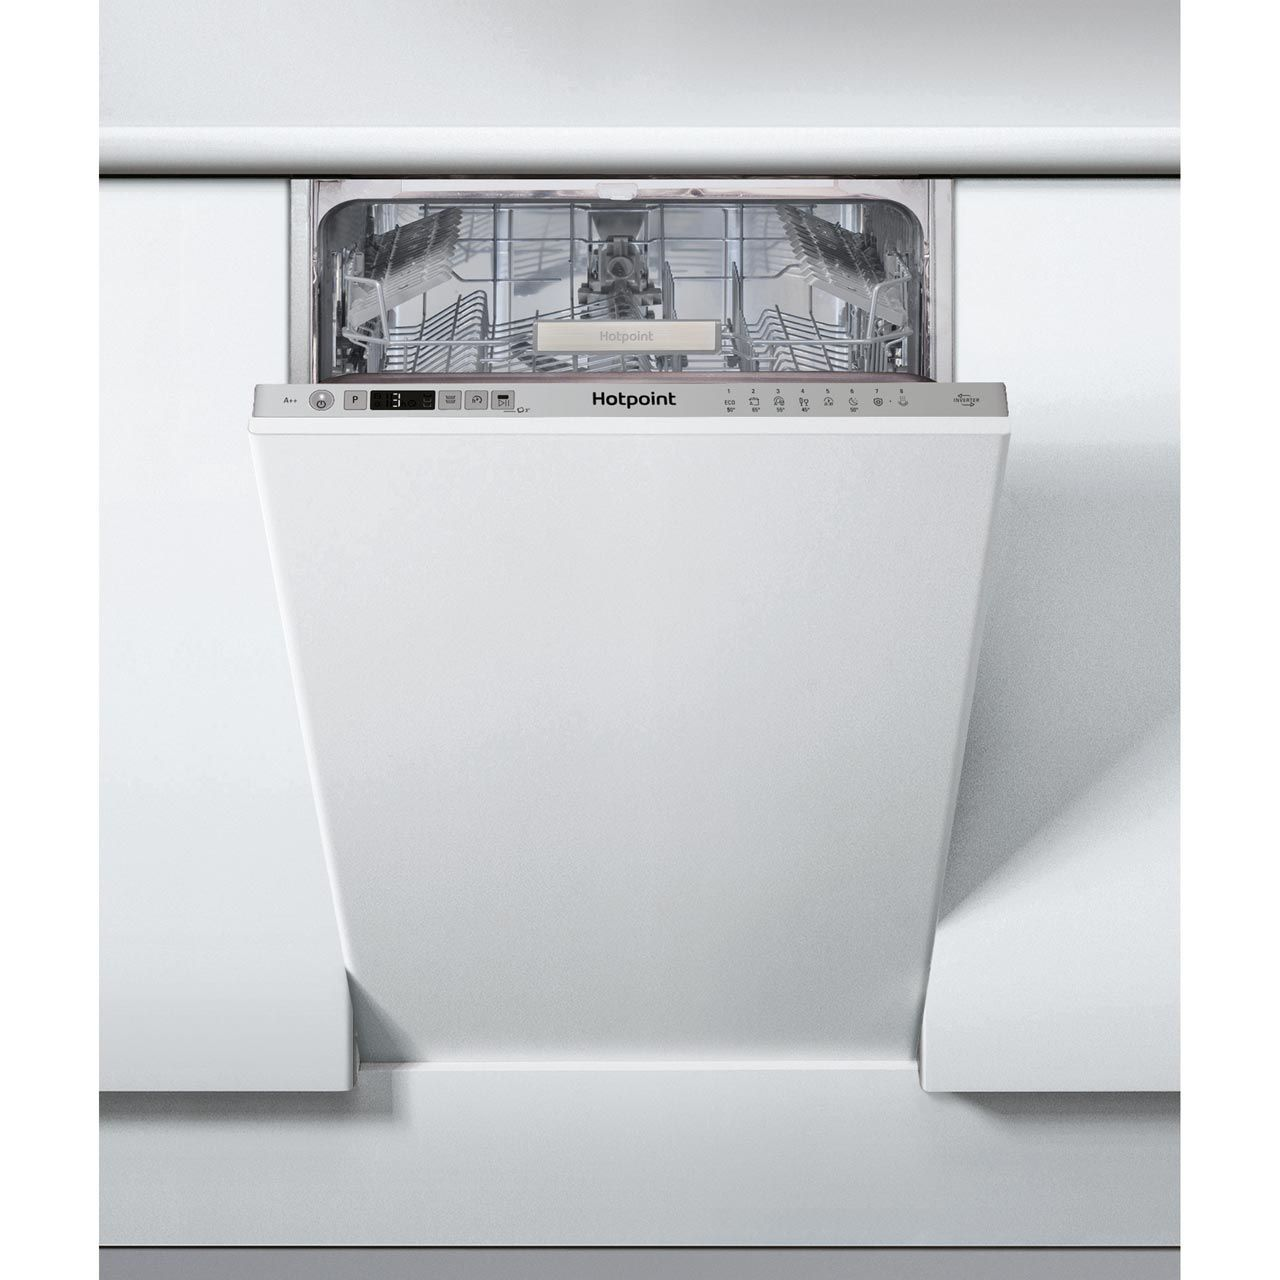 Hsic3t127uk Si Hotpoint Integrated Dishwasher Ao Com Dishwasher Hotpoint Hsic3t12 Integrated Dishwasher Fully Integrated Dishwasher Slimline Dishwasher